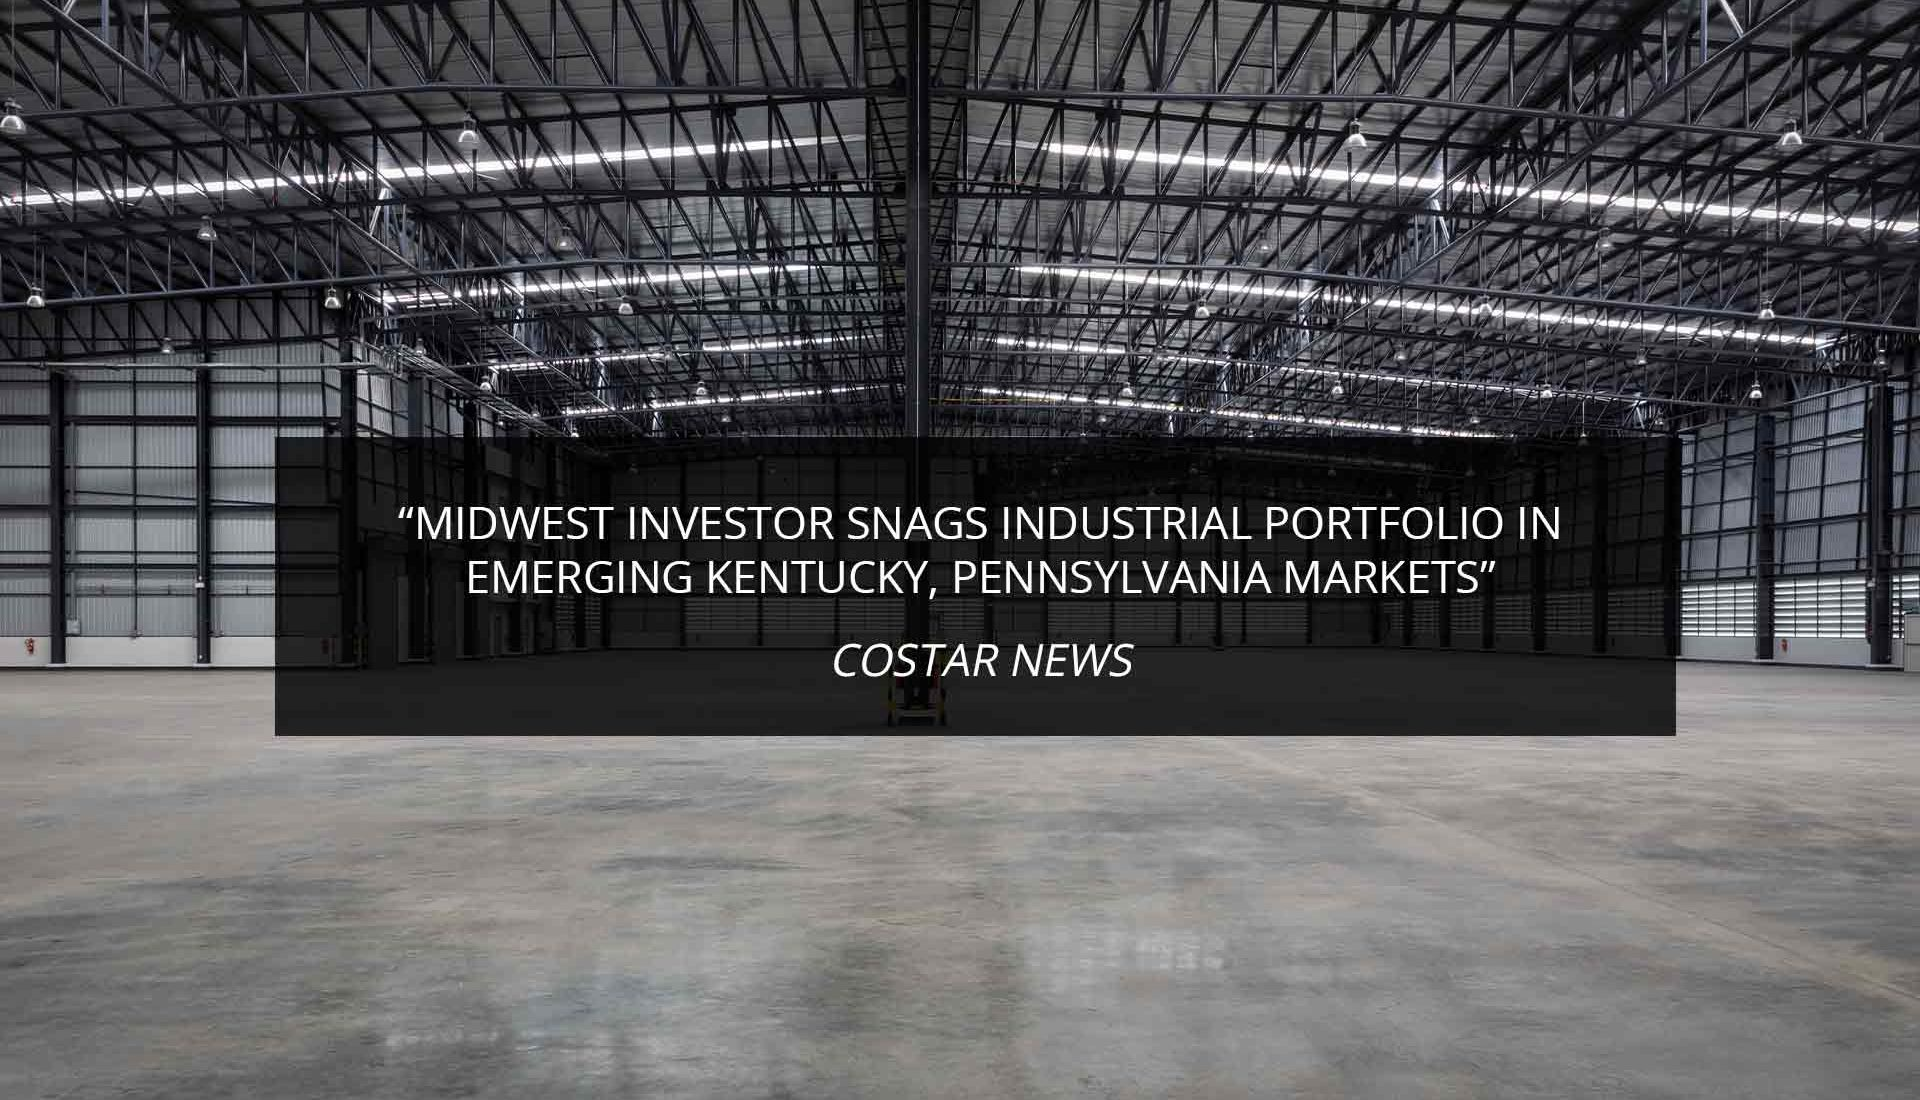 Midwest Investor Snags Industrial Portfolio in Emerging Kentucky, Pennsylvania Markets